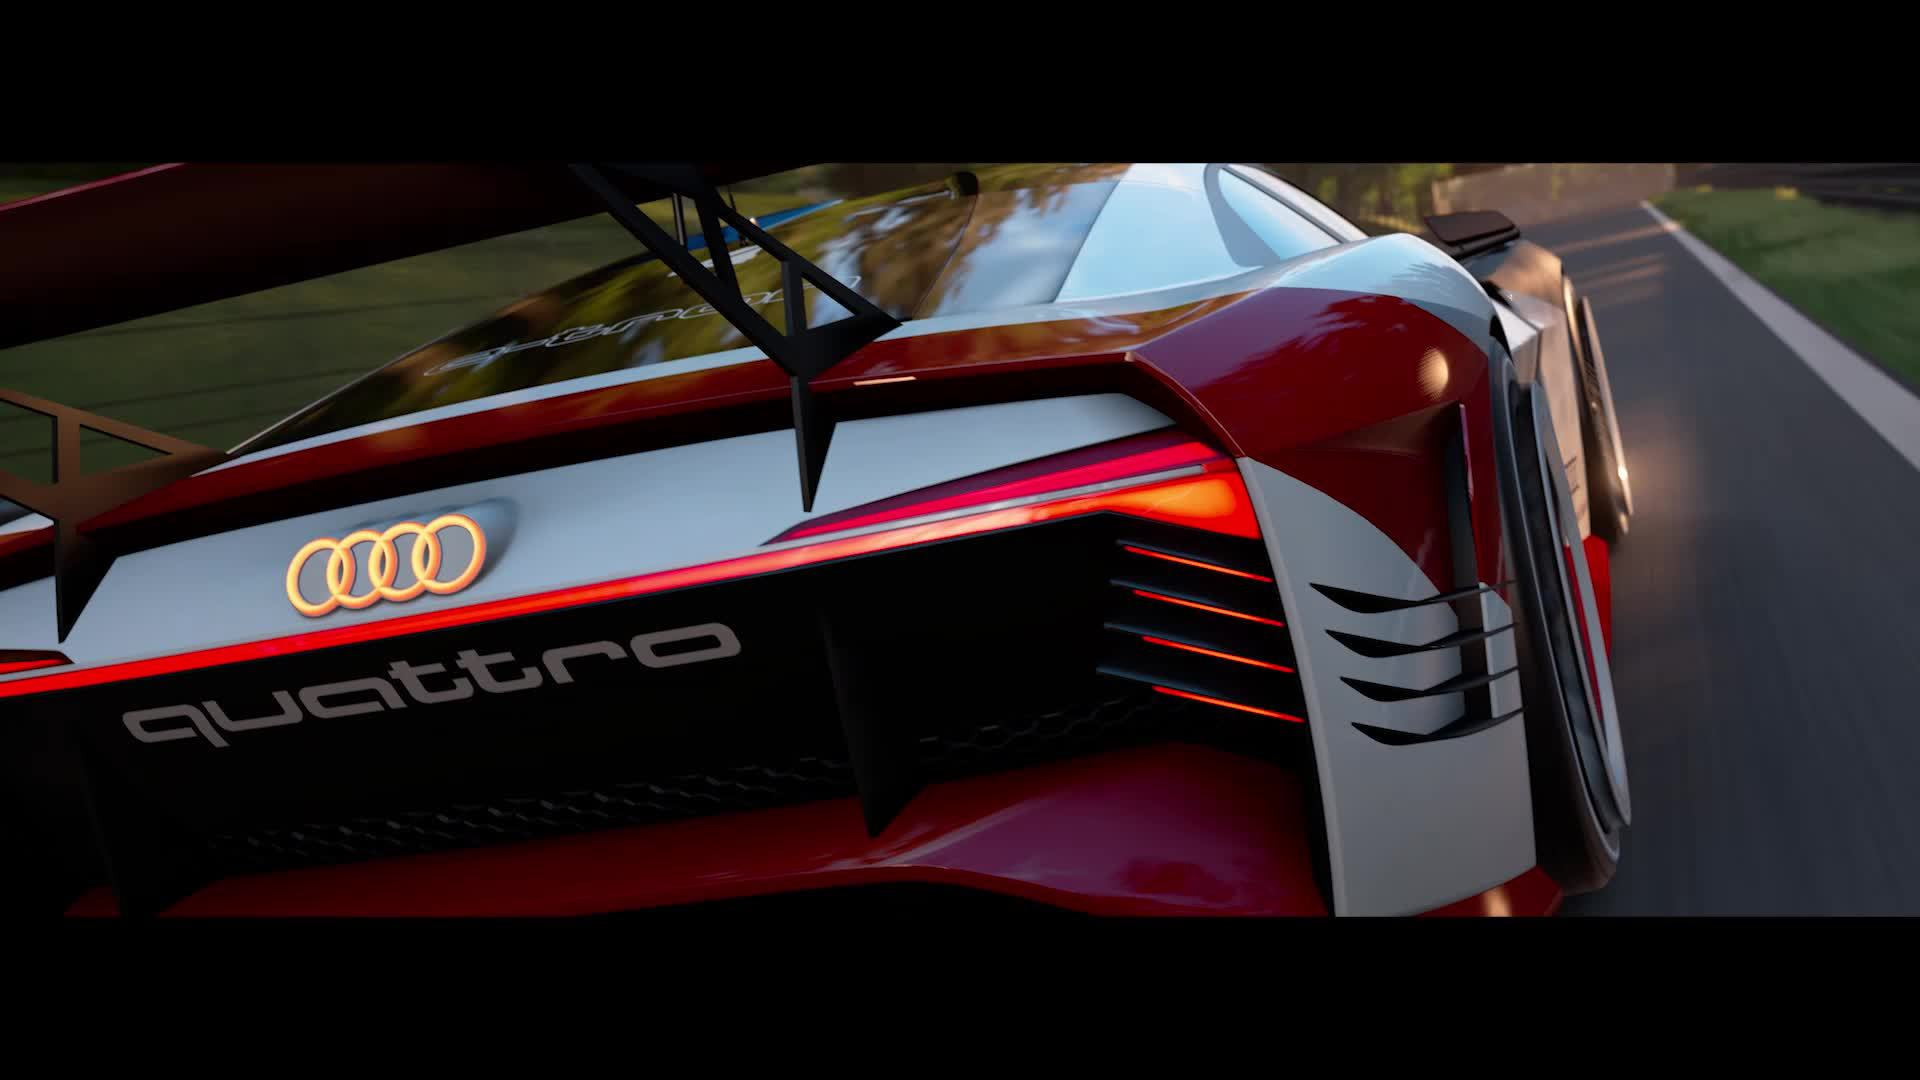 The real deal: Audi e-tron Vision Gran Turismo